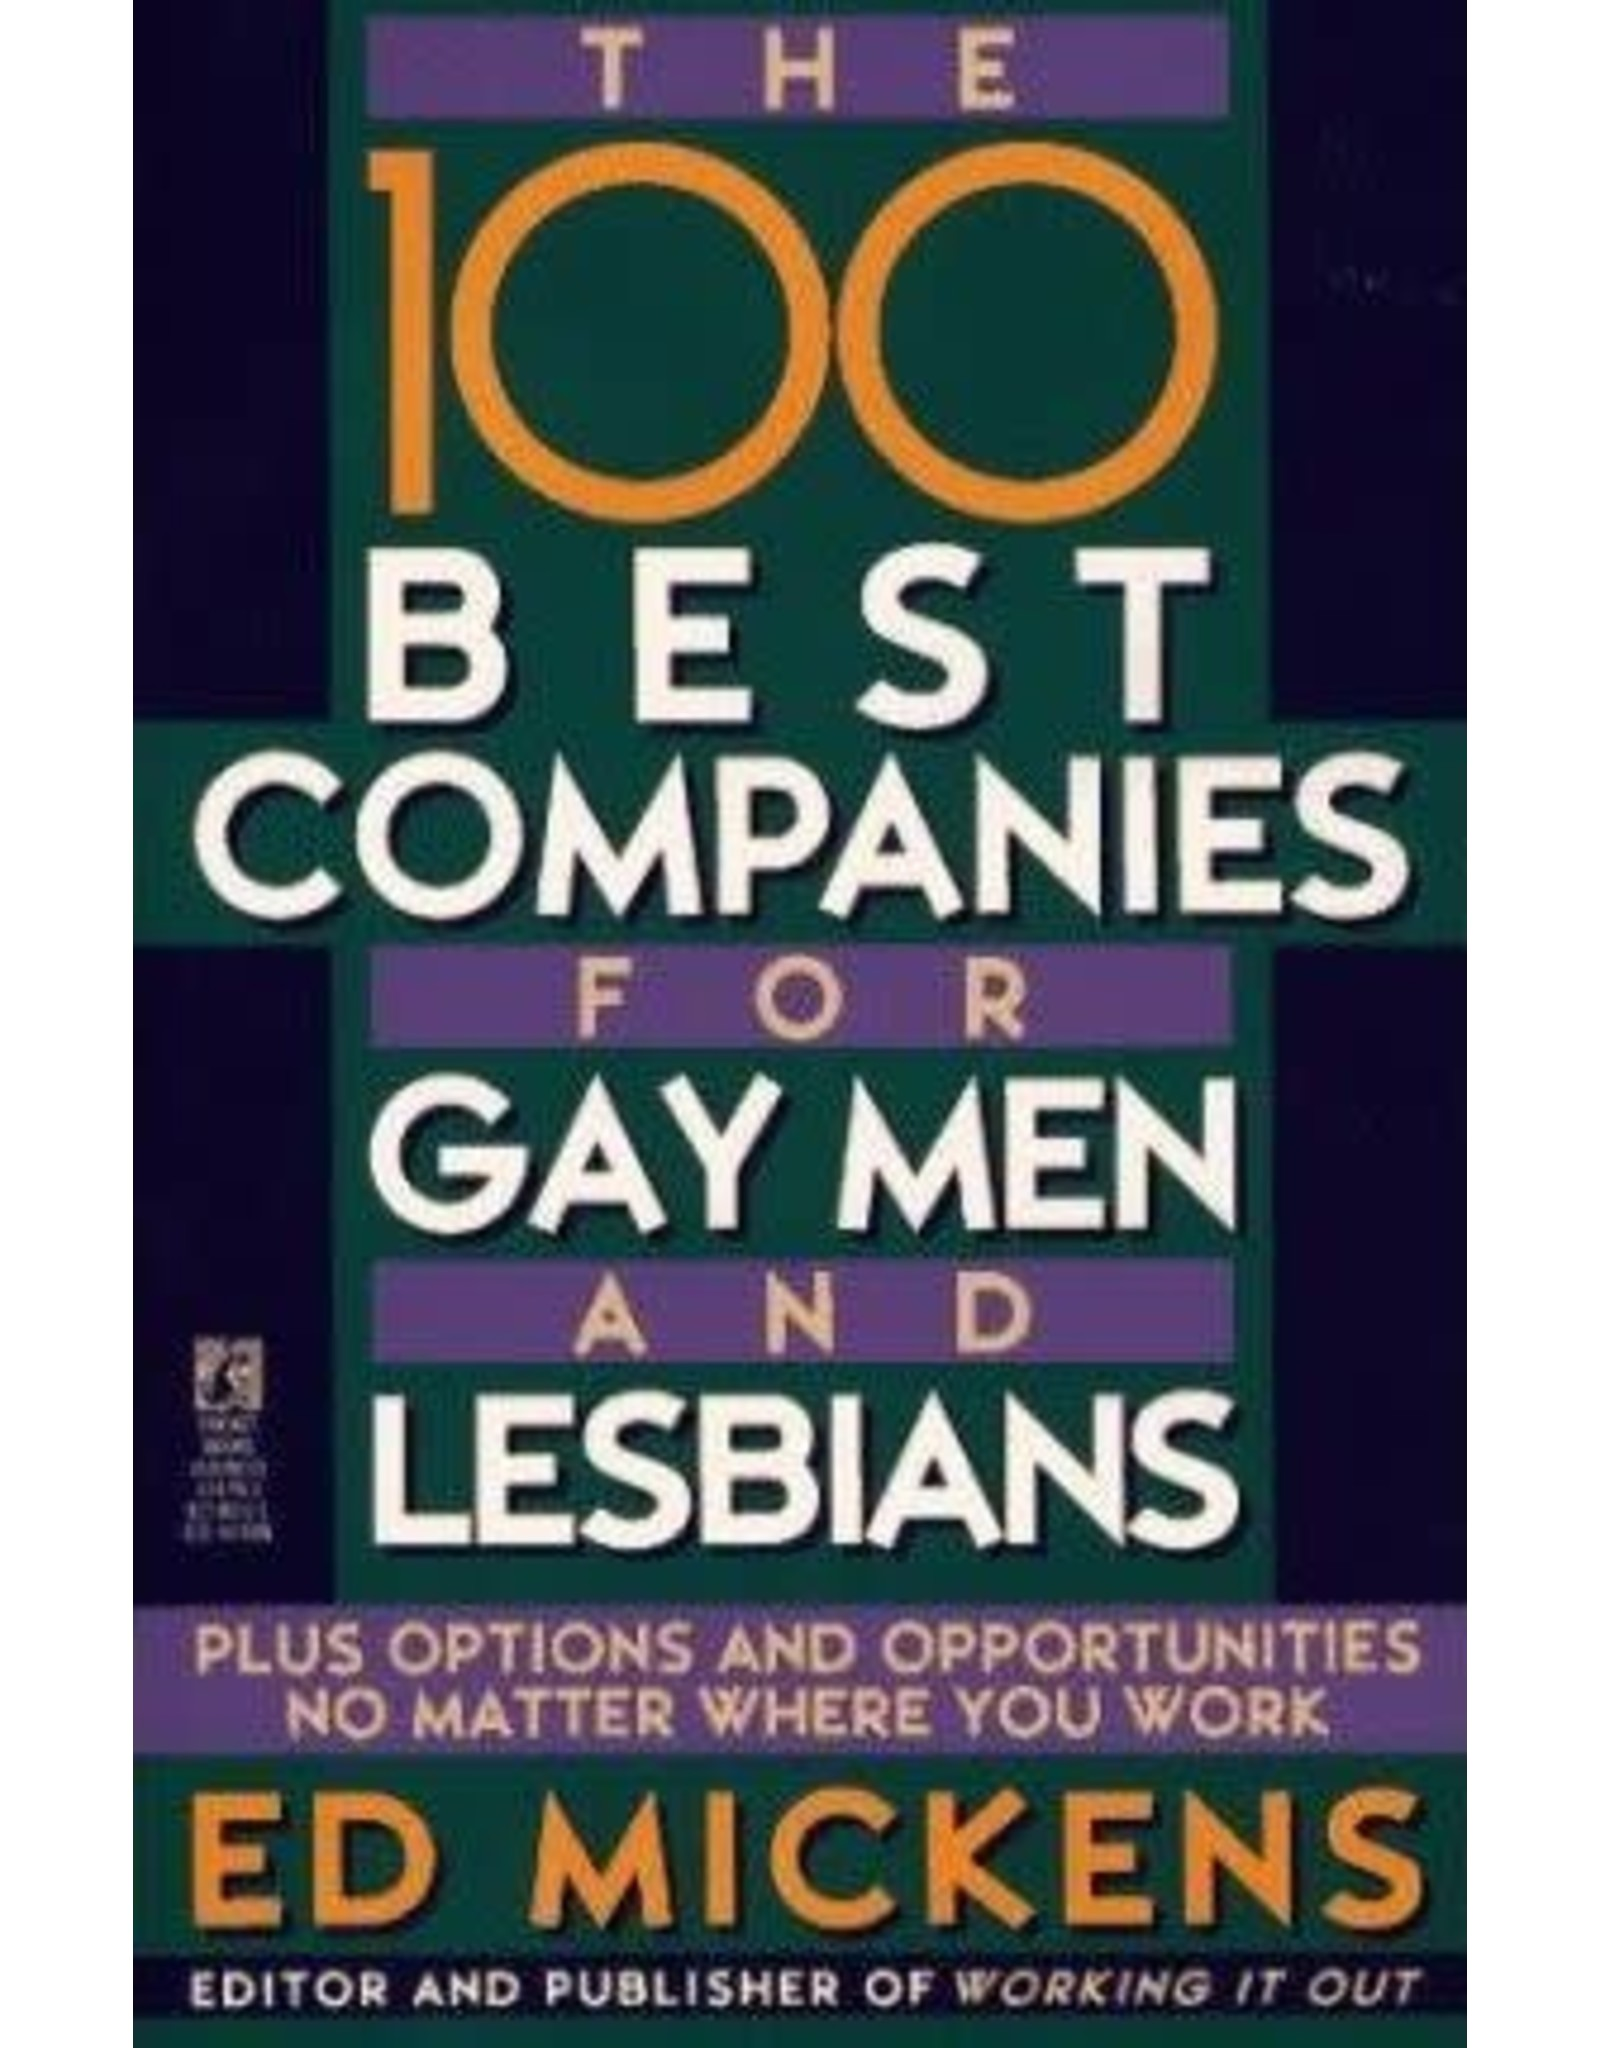 100 BEST COMPANIES FOR GAY MEN & LESBIA